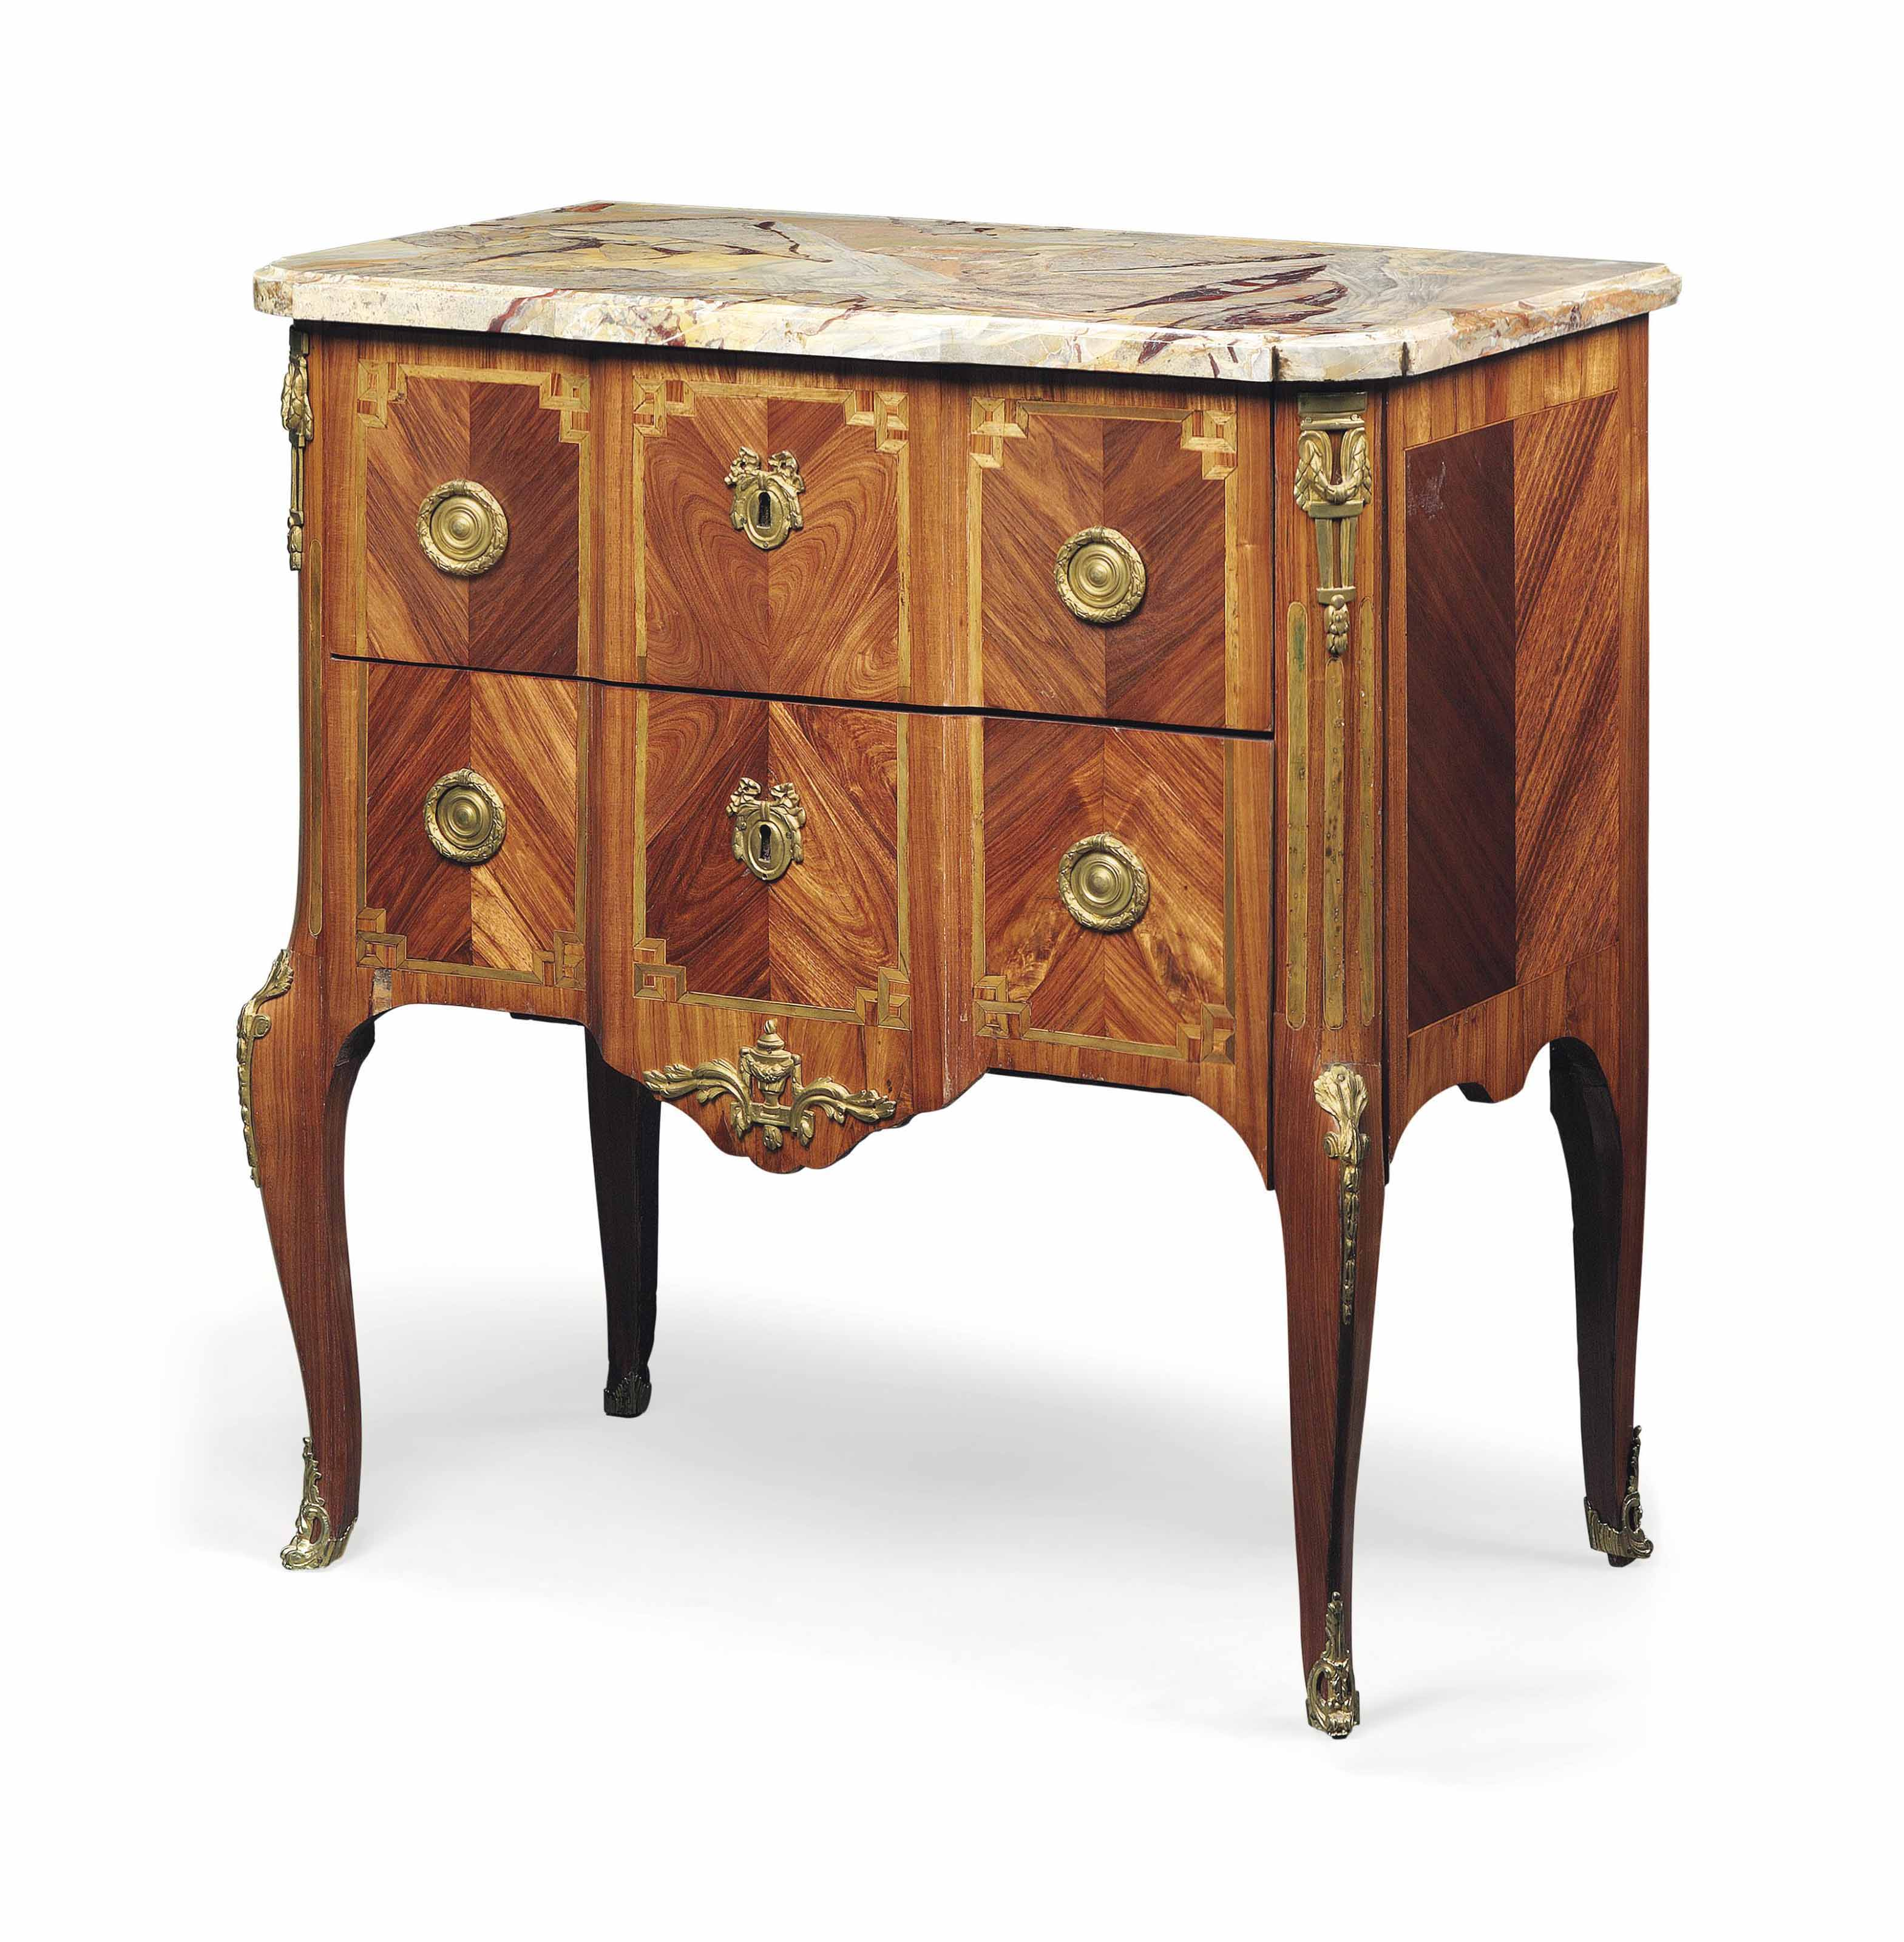 A LATE LOUIS XV ORMOLU-MOUNTED TULIPWOOD AND MARQUETRY COMMODE